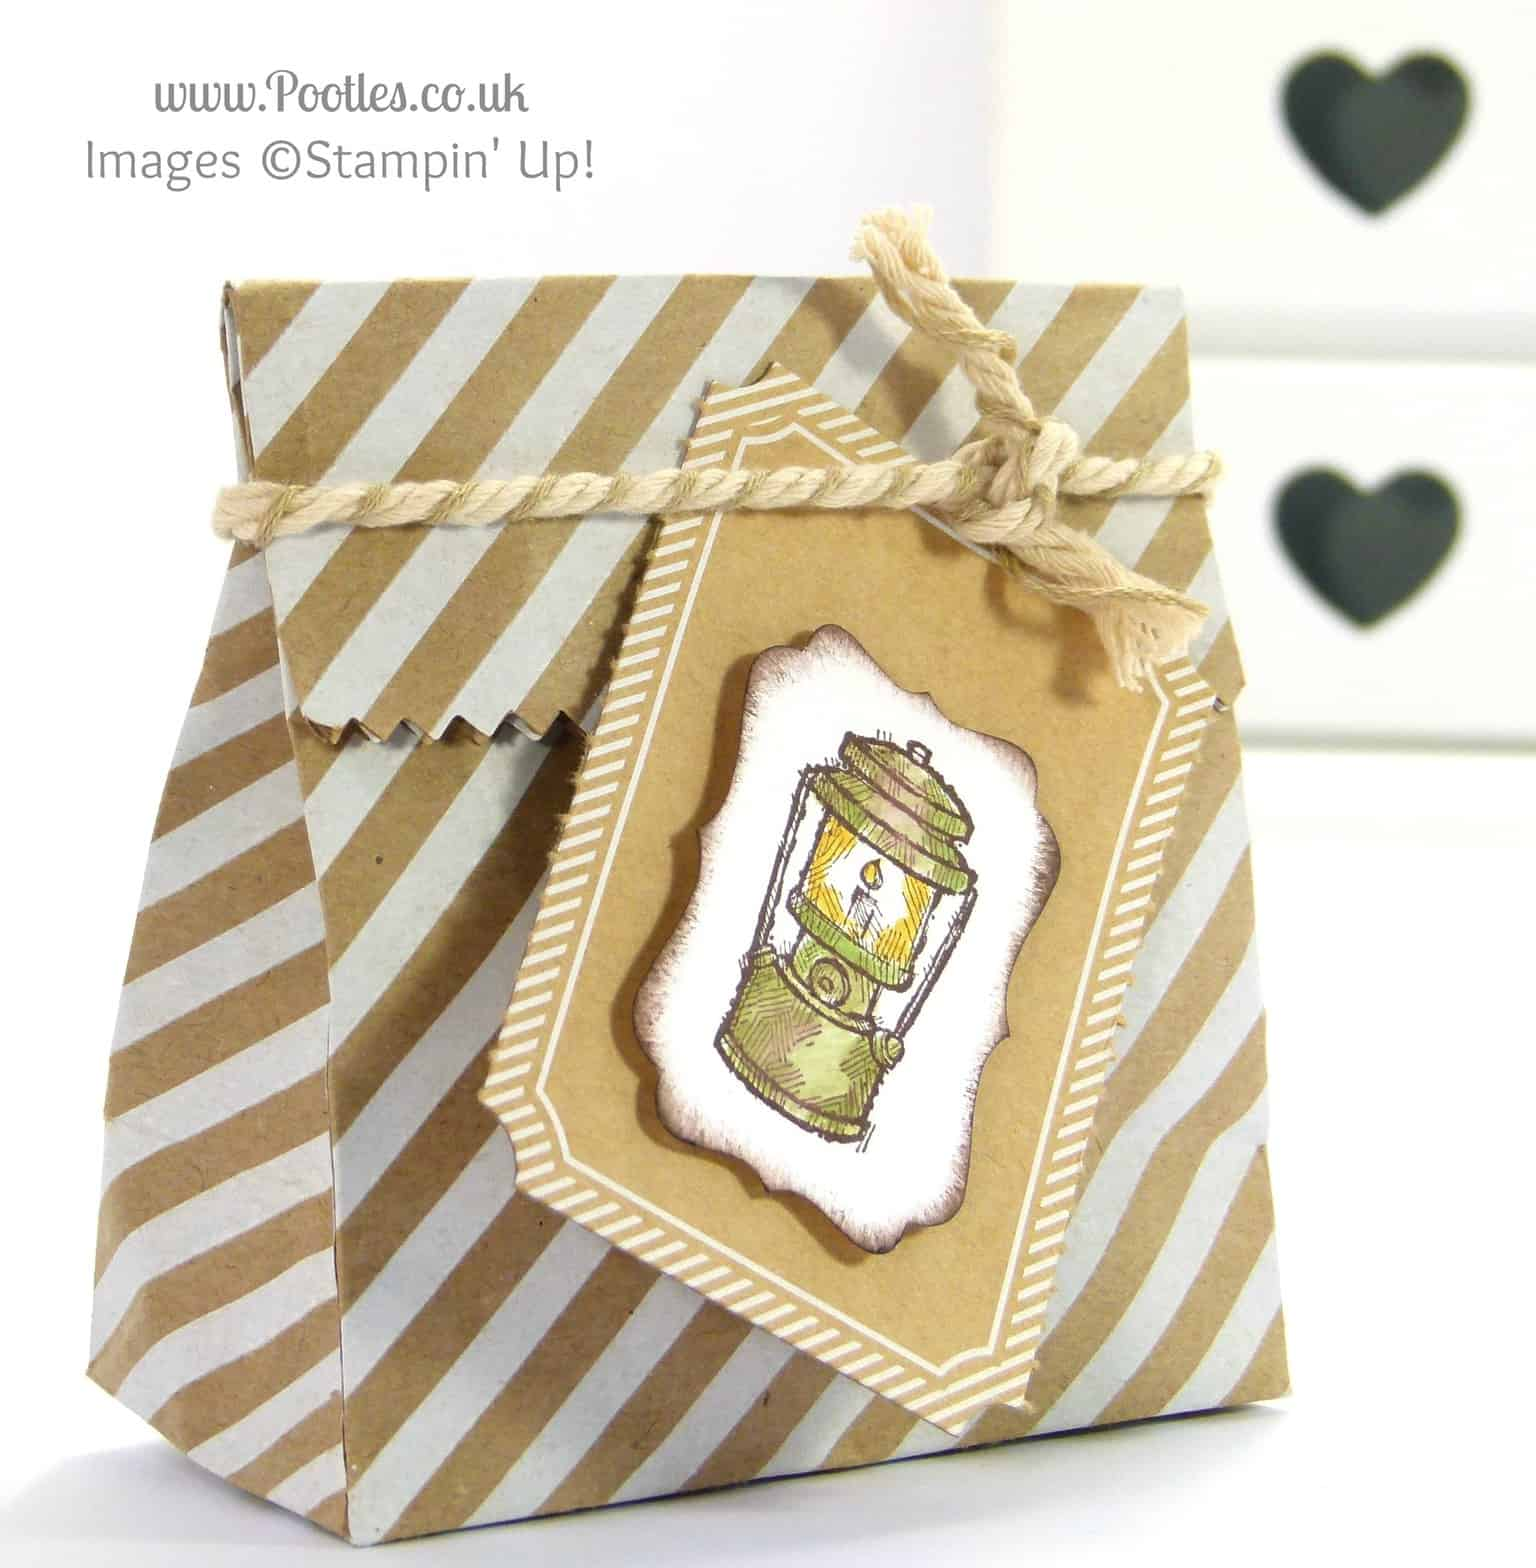 Stampin' Up! UK Demonstrator Pootles - Sweetie Round Bags for Camping Tutorial